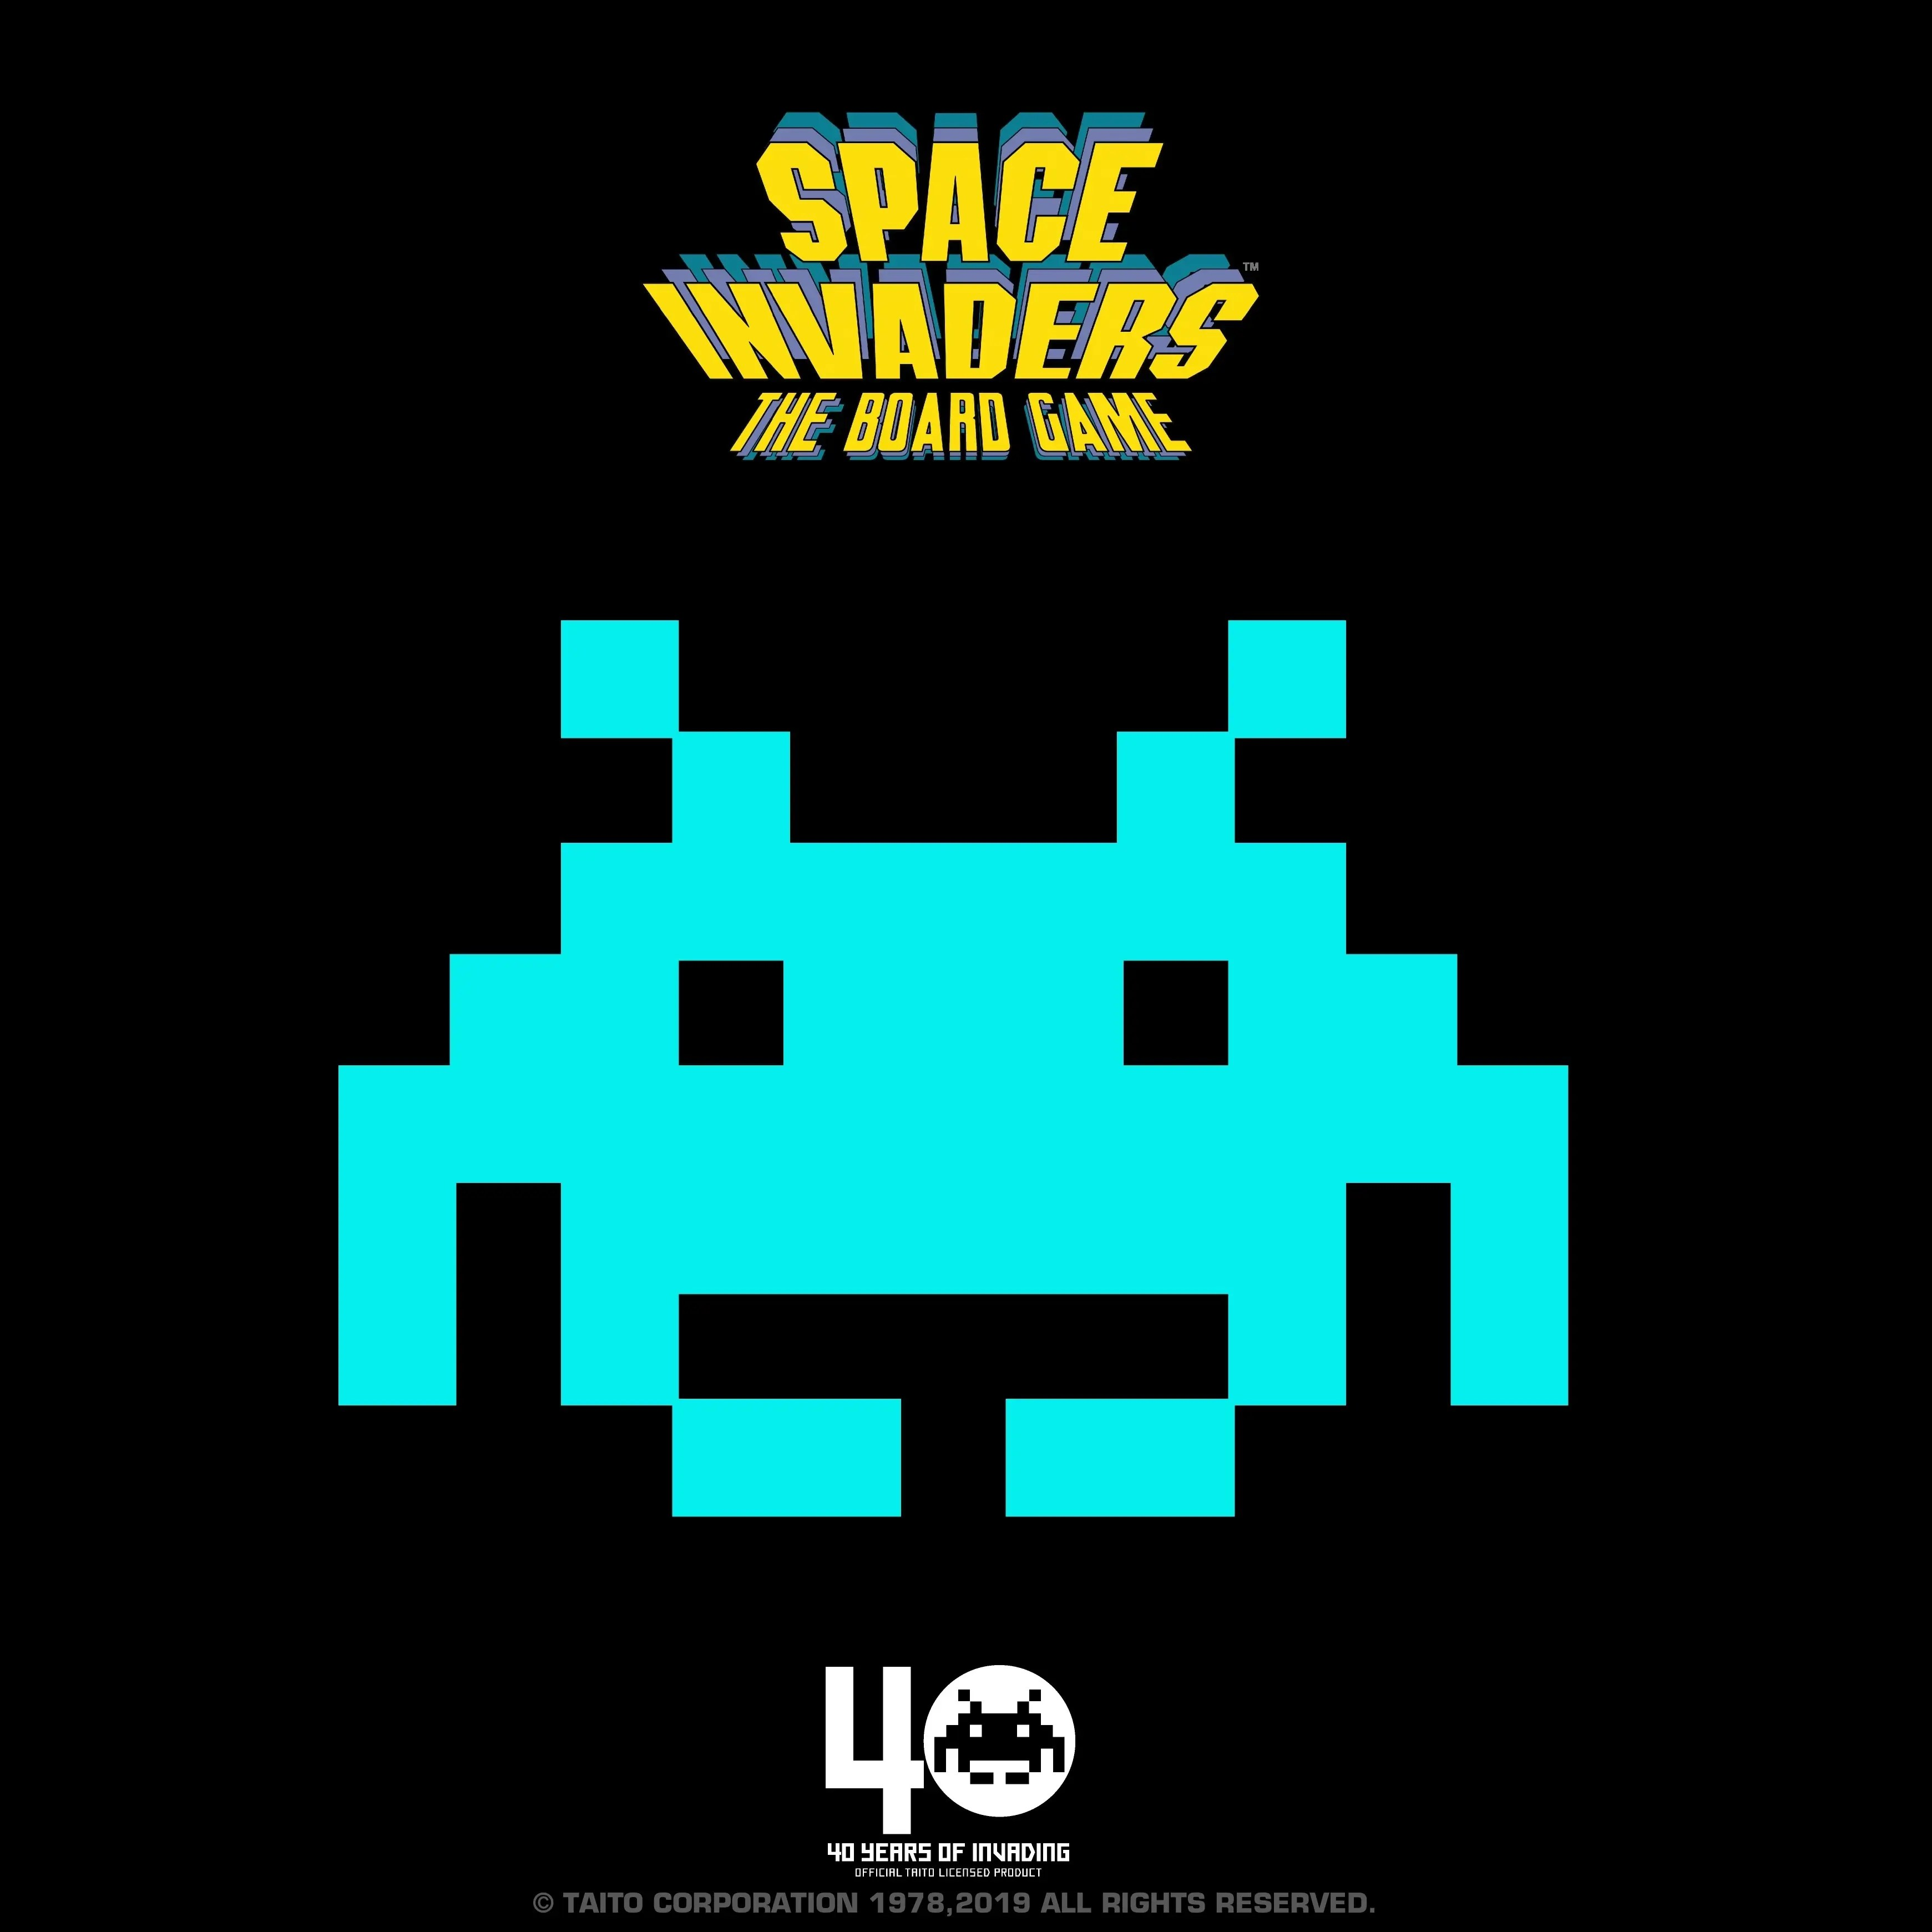 Wohnzimmer Weltweit Taito Corporation Kündigt Space Invaders The Board Game An